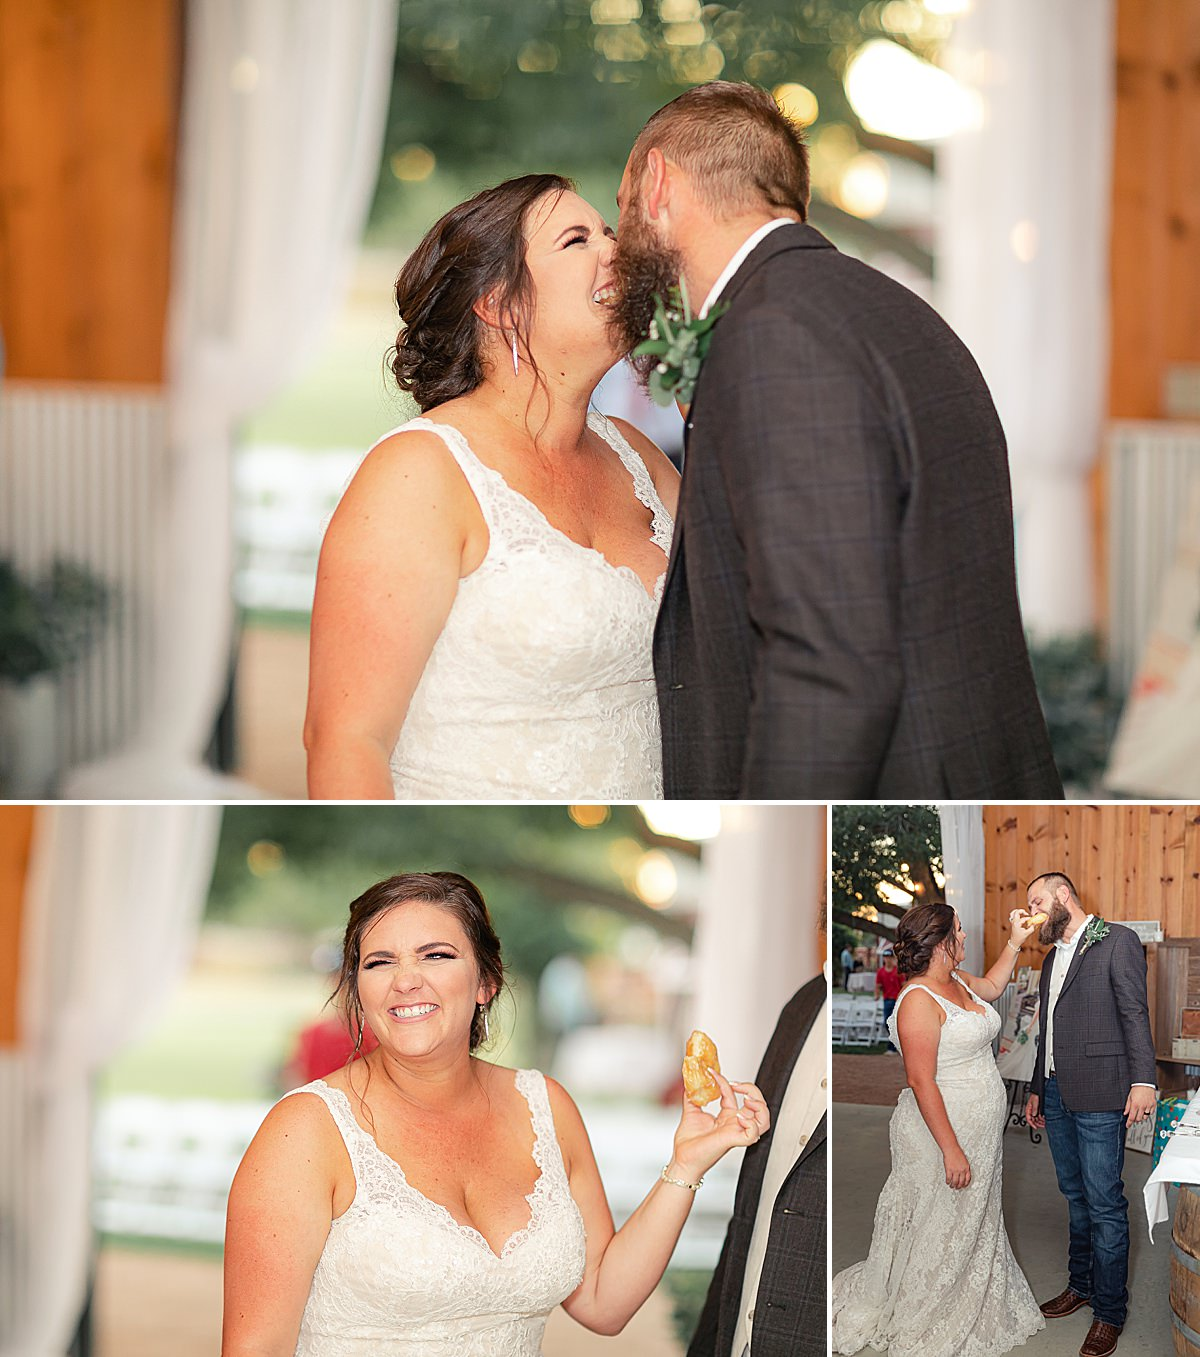 Rustic-Texas-Wedding-Hollow-Creek-Ranch-Carly-Barton-Photography_0053.jpg